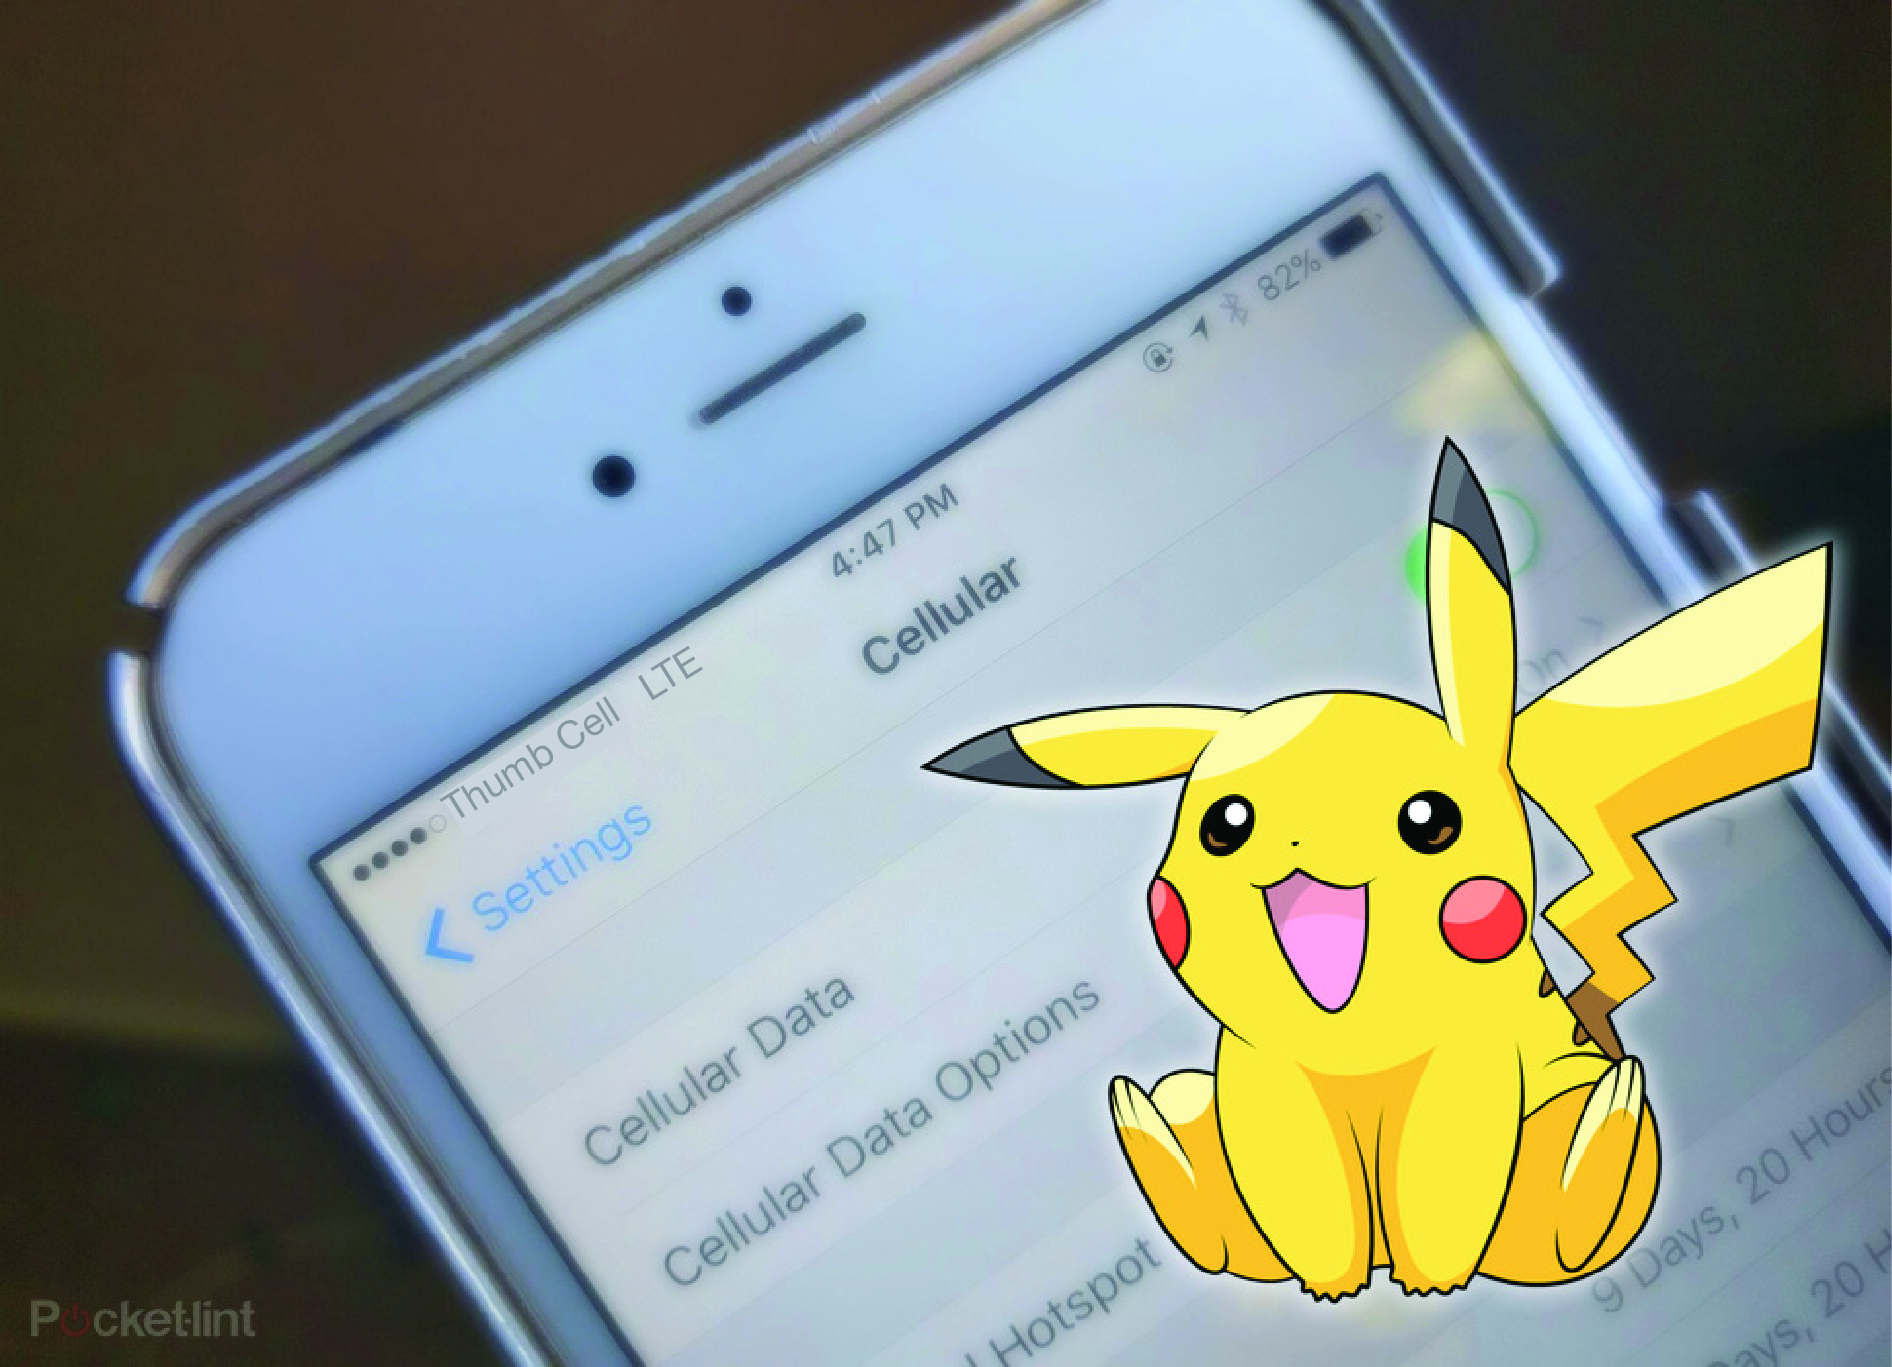 Are you or your kids having fun playing  Pokemon Go ? While you're trying to Catch 'Em All, make sure you're aware of your cellular data usage. Keep in mind that Pokemon Go requires your phone to be constantly checking and transmitting your location via GPS. And because the app also requires you to be outdoors and moving around, you will definitely be using a cellular connection rather than a Wi-Fi connection. To top it all off, the game uses your camera a lot, so your battery will quickly drain too. Here are some tips to keep your data usage under control:    • Download all app updates and in-app purchases over Wi-Fi.    • Only play in areas where public Wi-Fi is available.    • Set a mobile data limit for yourself. On Android, go to Settings > Wireless & Networks > Data Usage > Data Usage Date Cycle > And select a date range. On iPhone, you can disable the app from using cellular data altogether by going to Settings > Cellular > Cellular Data Usage.    • Avoid downloading/streaming videos, music, and media while playing.    • Close out of other open apps that may be using up data.    • Restrict background app data. On Android, go to Settings > Application or Apps > Pokemon Go > Data Usage > Restrict Background Data. On iPhone, you can stop apps from refreshing in the background by going to Settings > General > Background App Refresh> Pokemon Go.    • Disable notifications under your phone's Settings app. Email and push notifications from various apps also eat into data.    • And finally, we know it's hard, but pace yourself. Moderation is key. ;-)